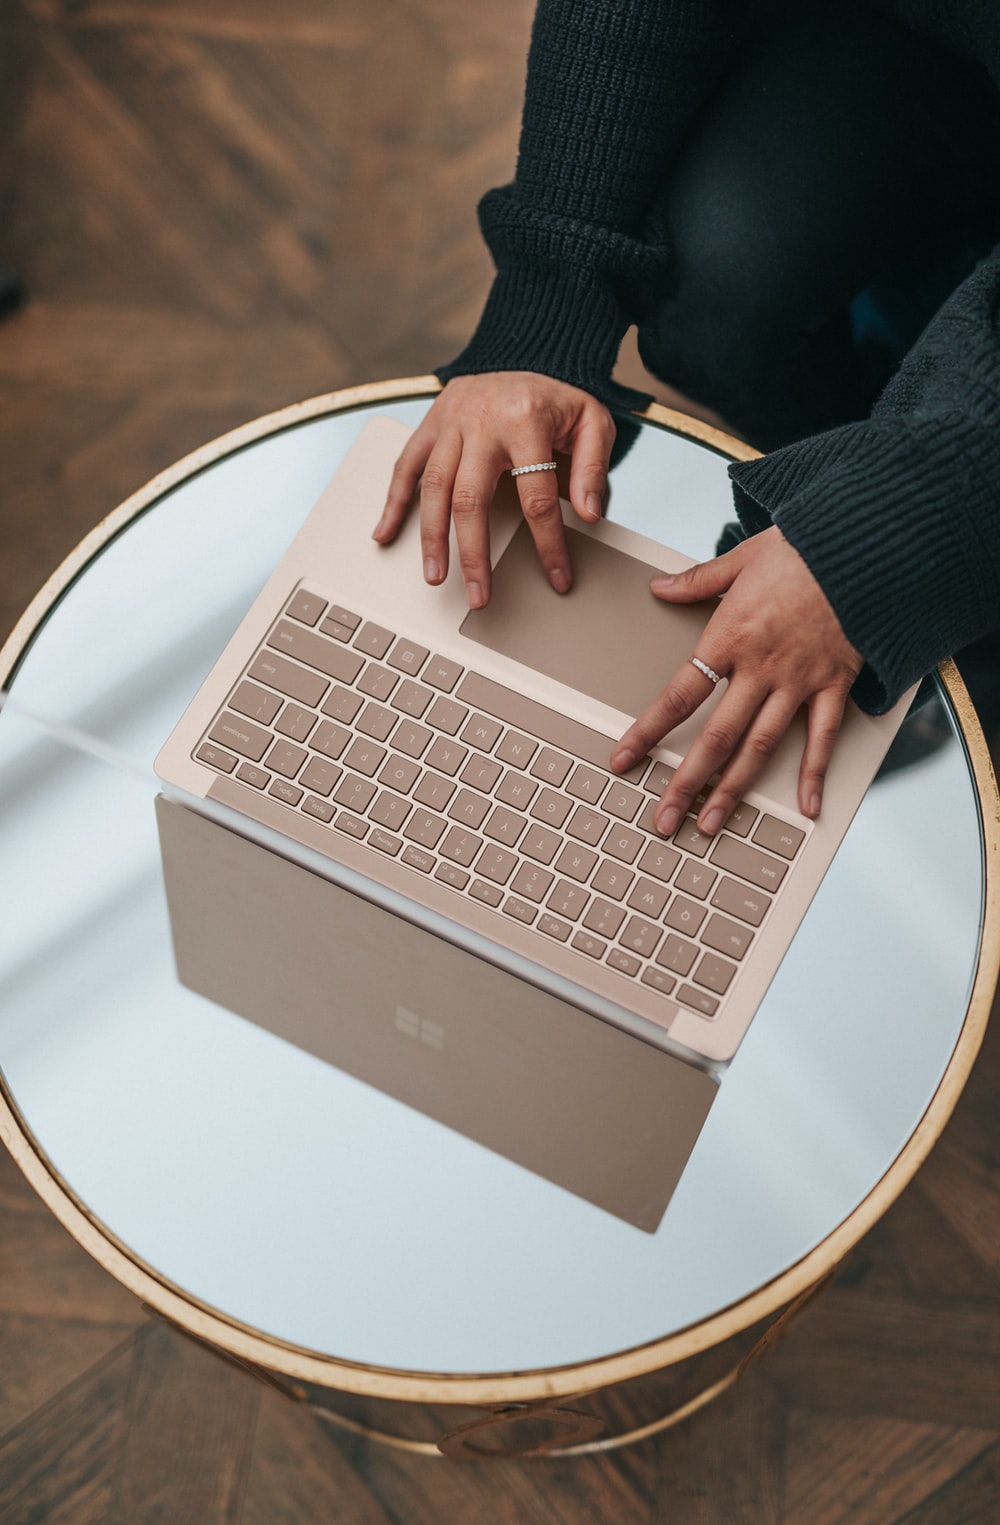 person using Microsoft Surface Laptop on white round table